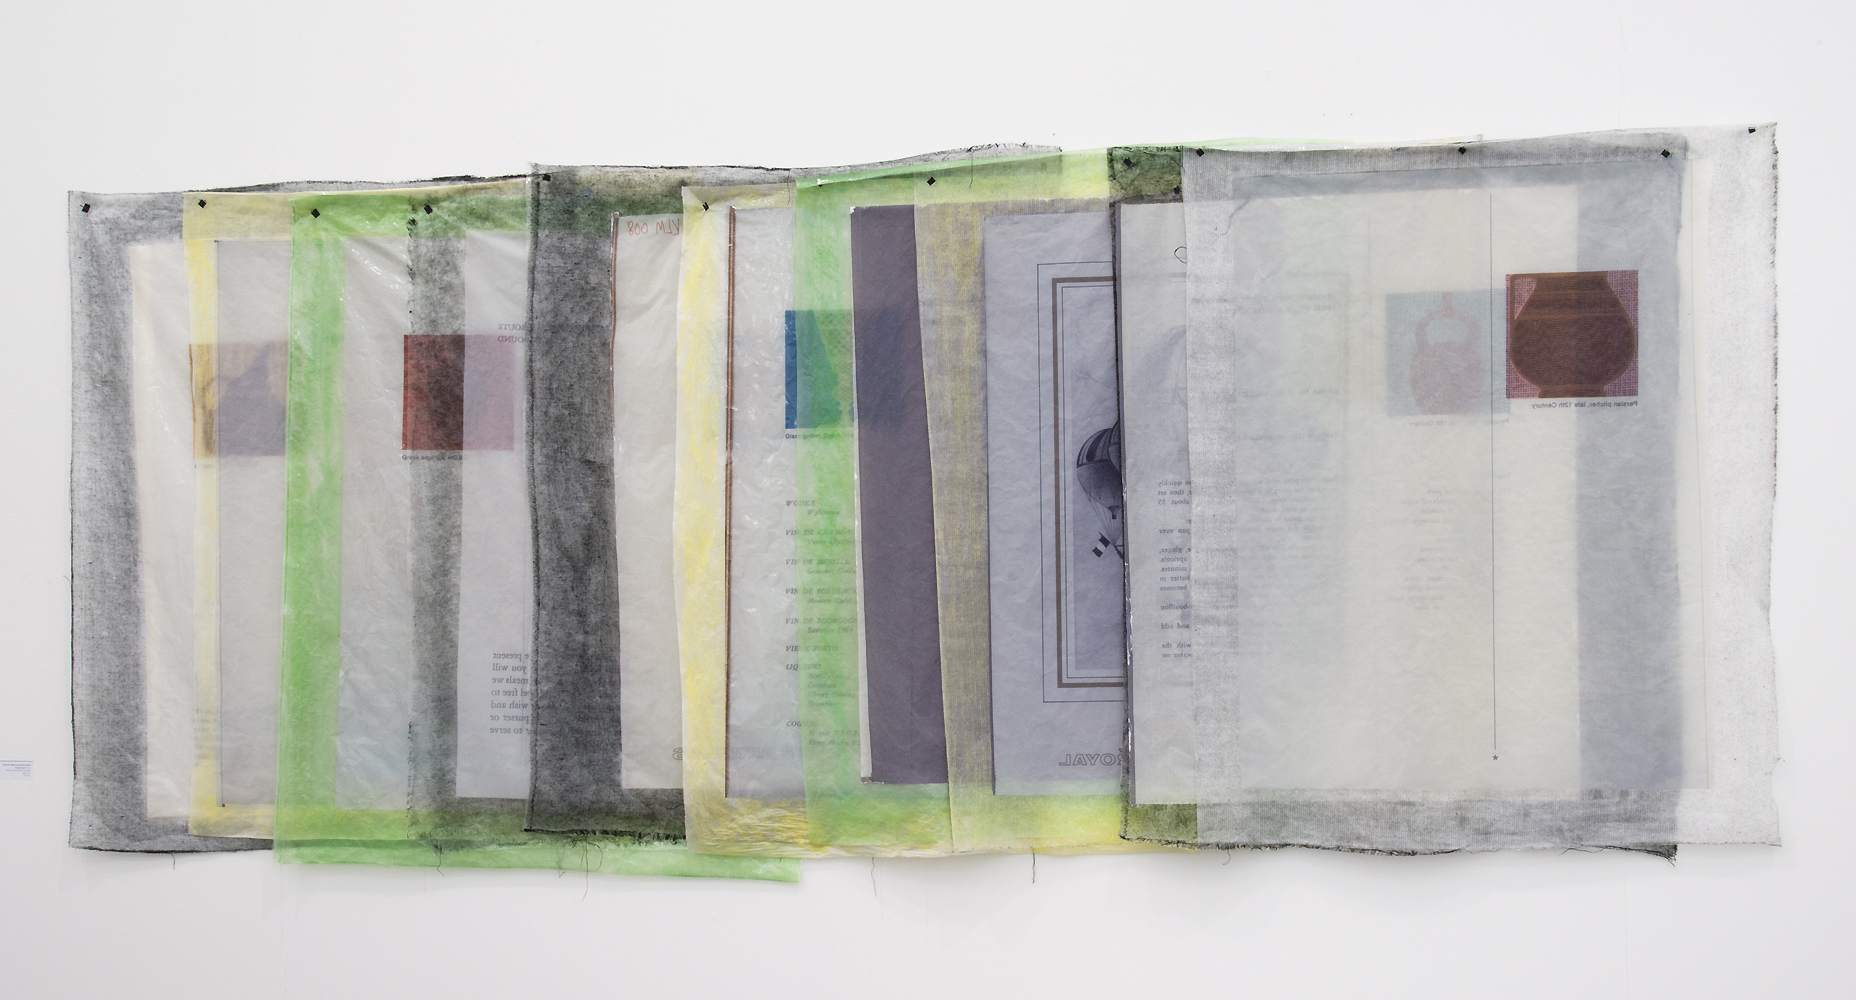 Valerie Snobeck / Catherine Sullivan,  Limited Good 9 , 2013, peeled prints and fabric on plastic, 49 x 122 inch